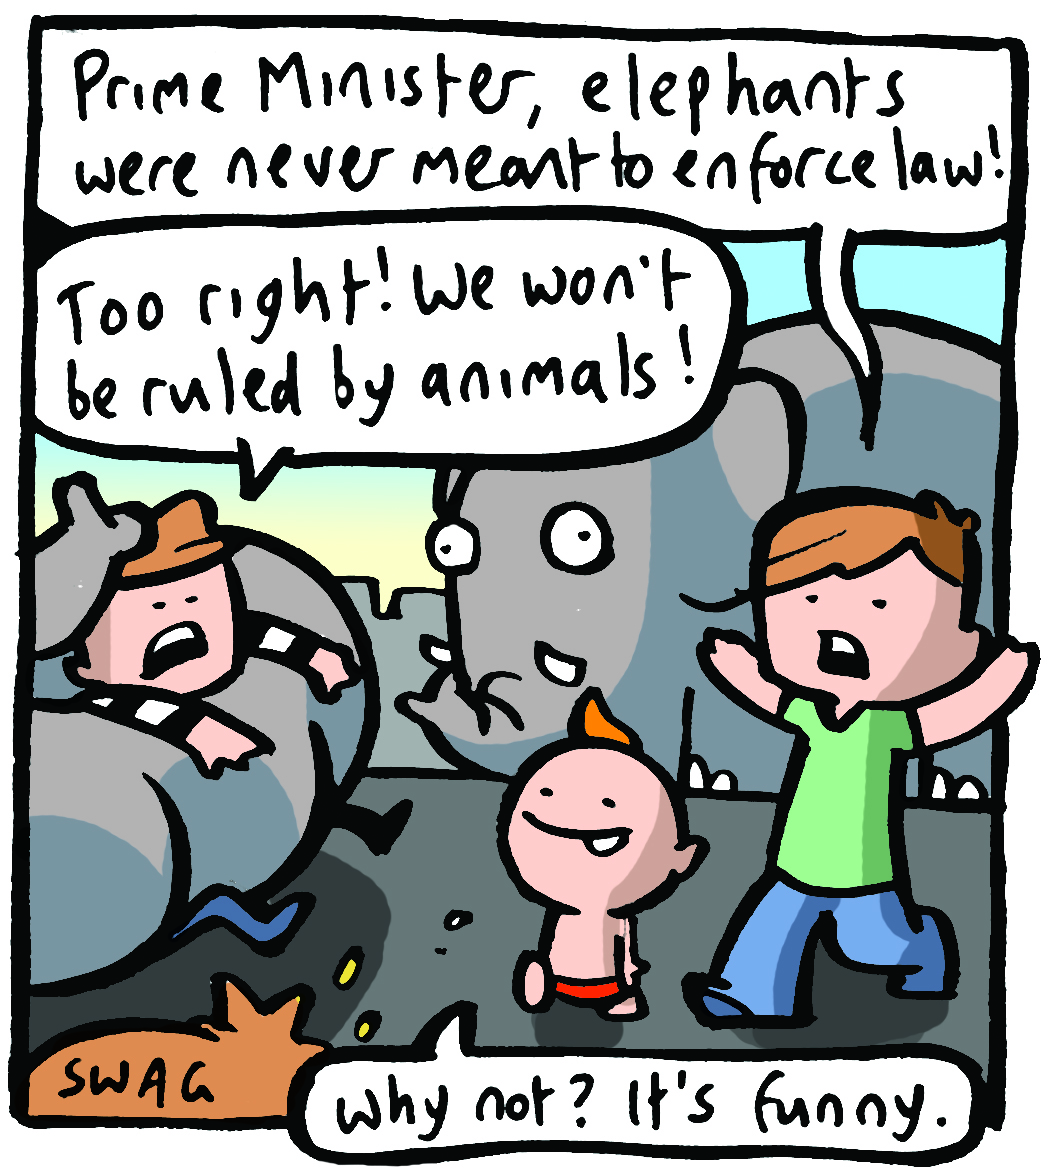 Elephants were never meant to enforce the law